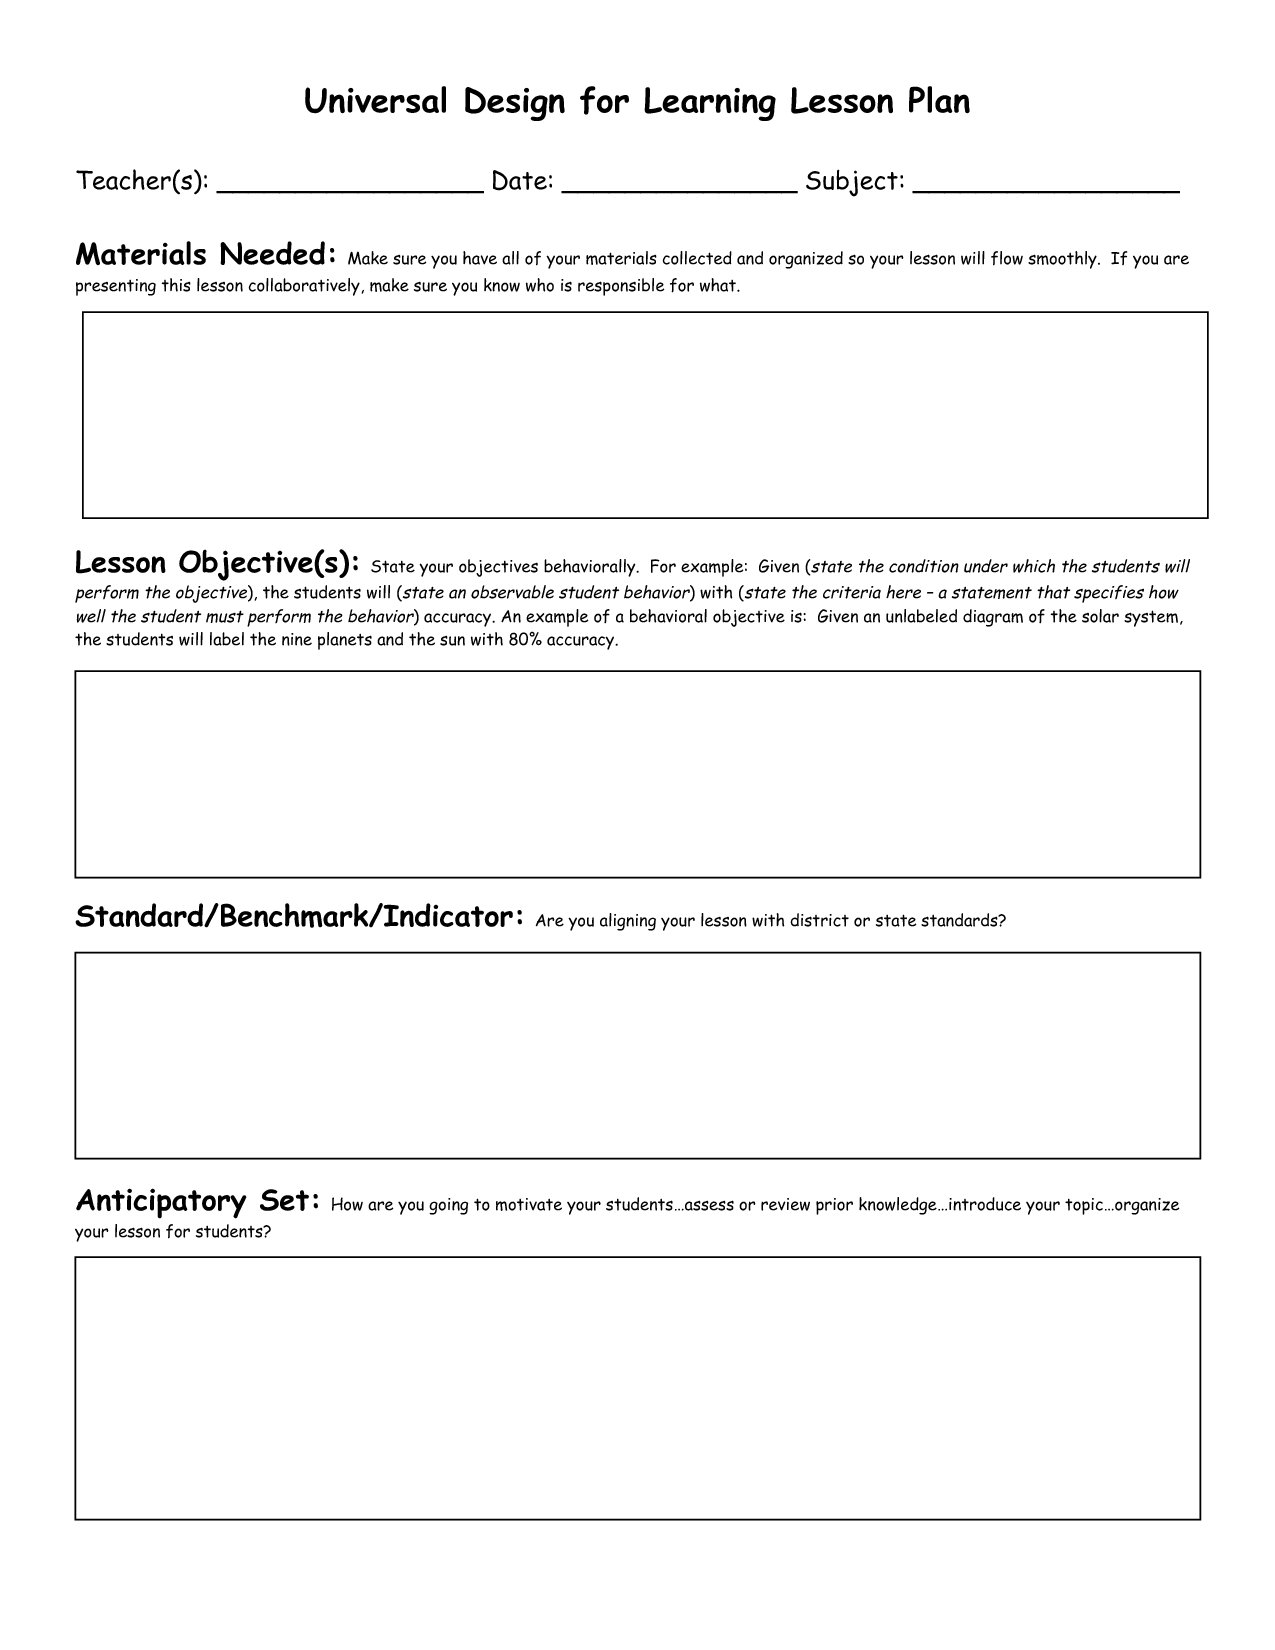 Lesson plan template ideas on pinterest lesson plan for Singapore math lesson plan template